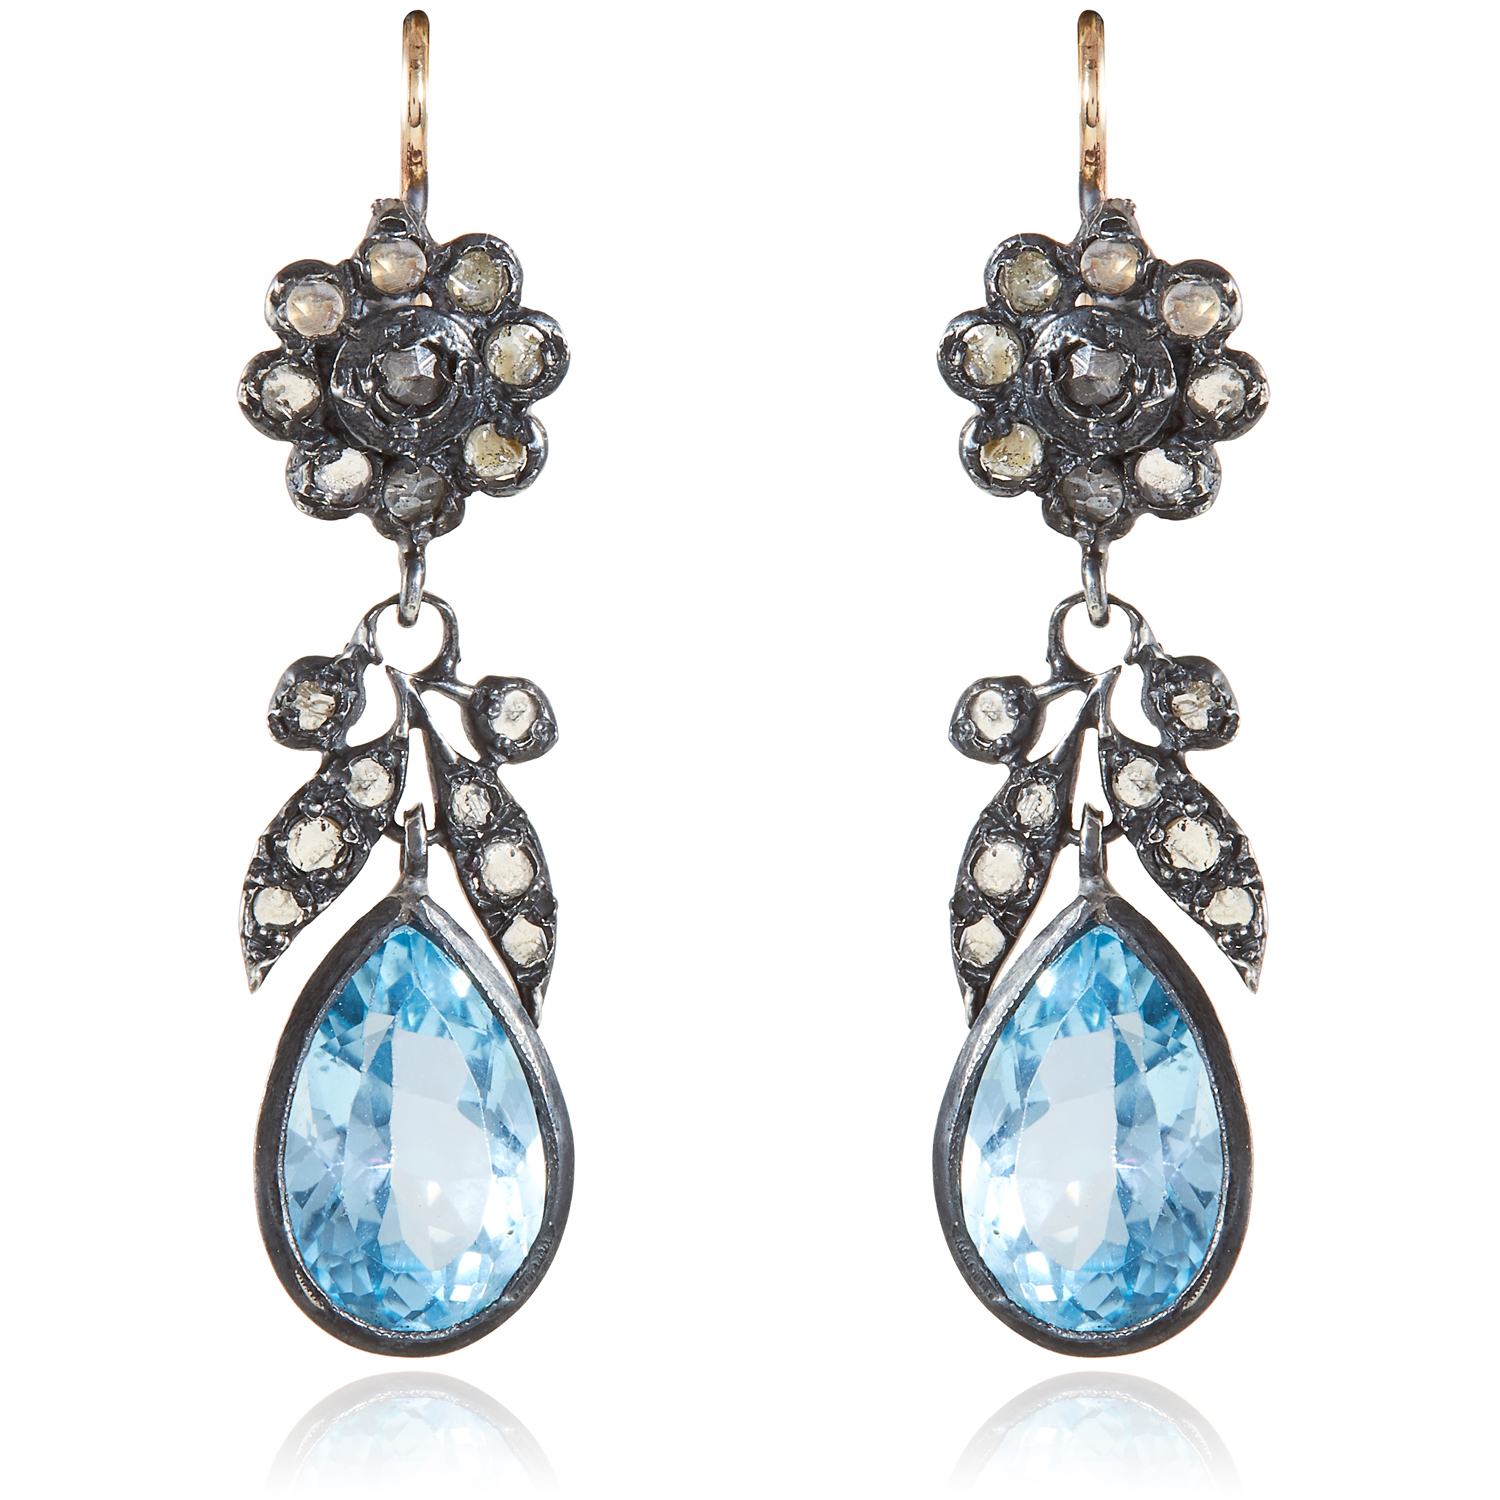 A PAIR OF ANTIQUE AQUAMARINE AND DIAMOND EARRINGS, 19TH CENTURY in gold and silver, each set with